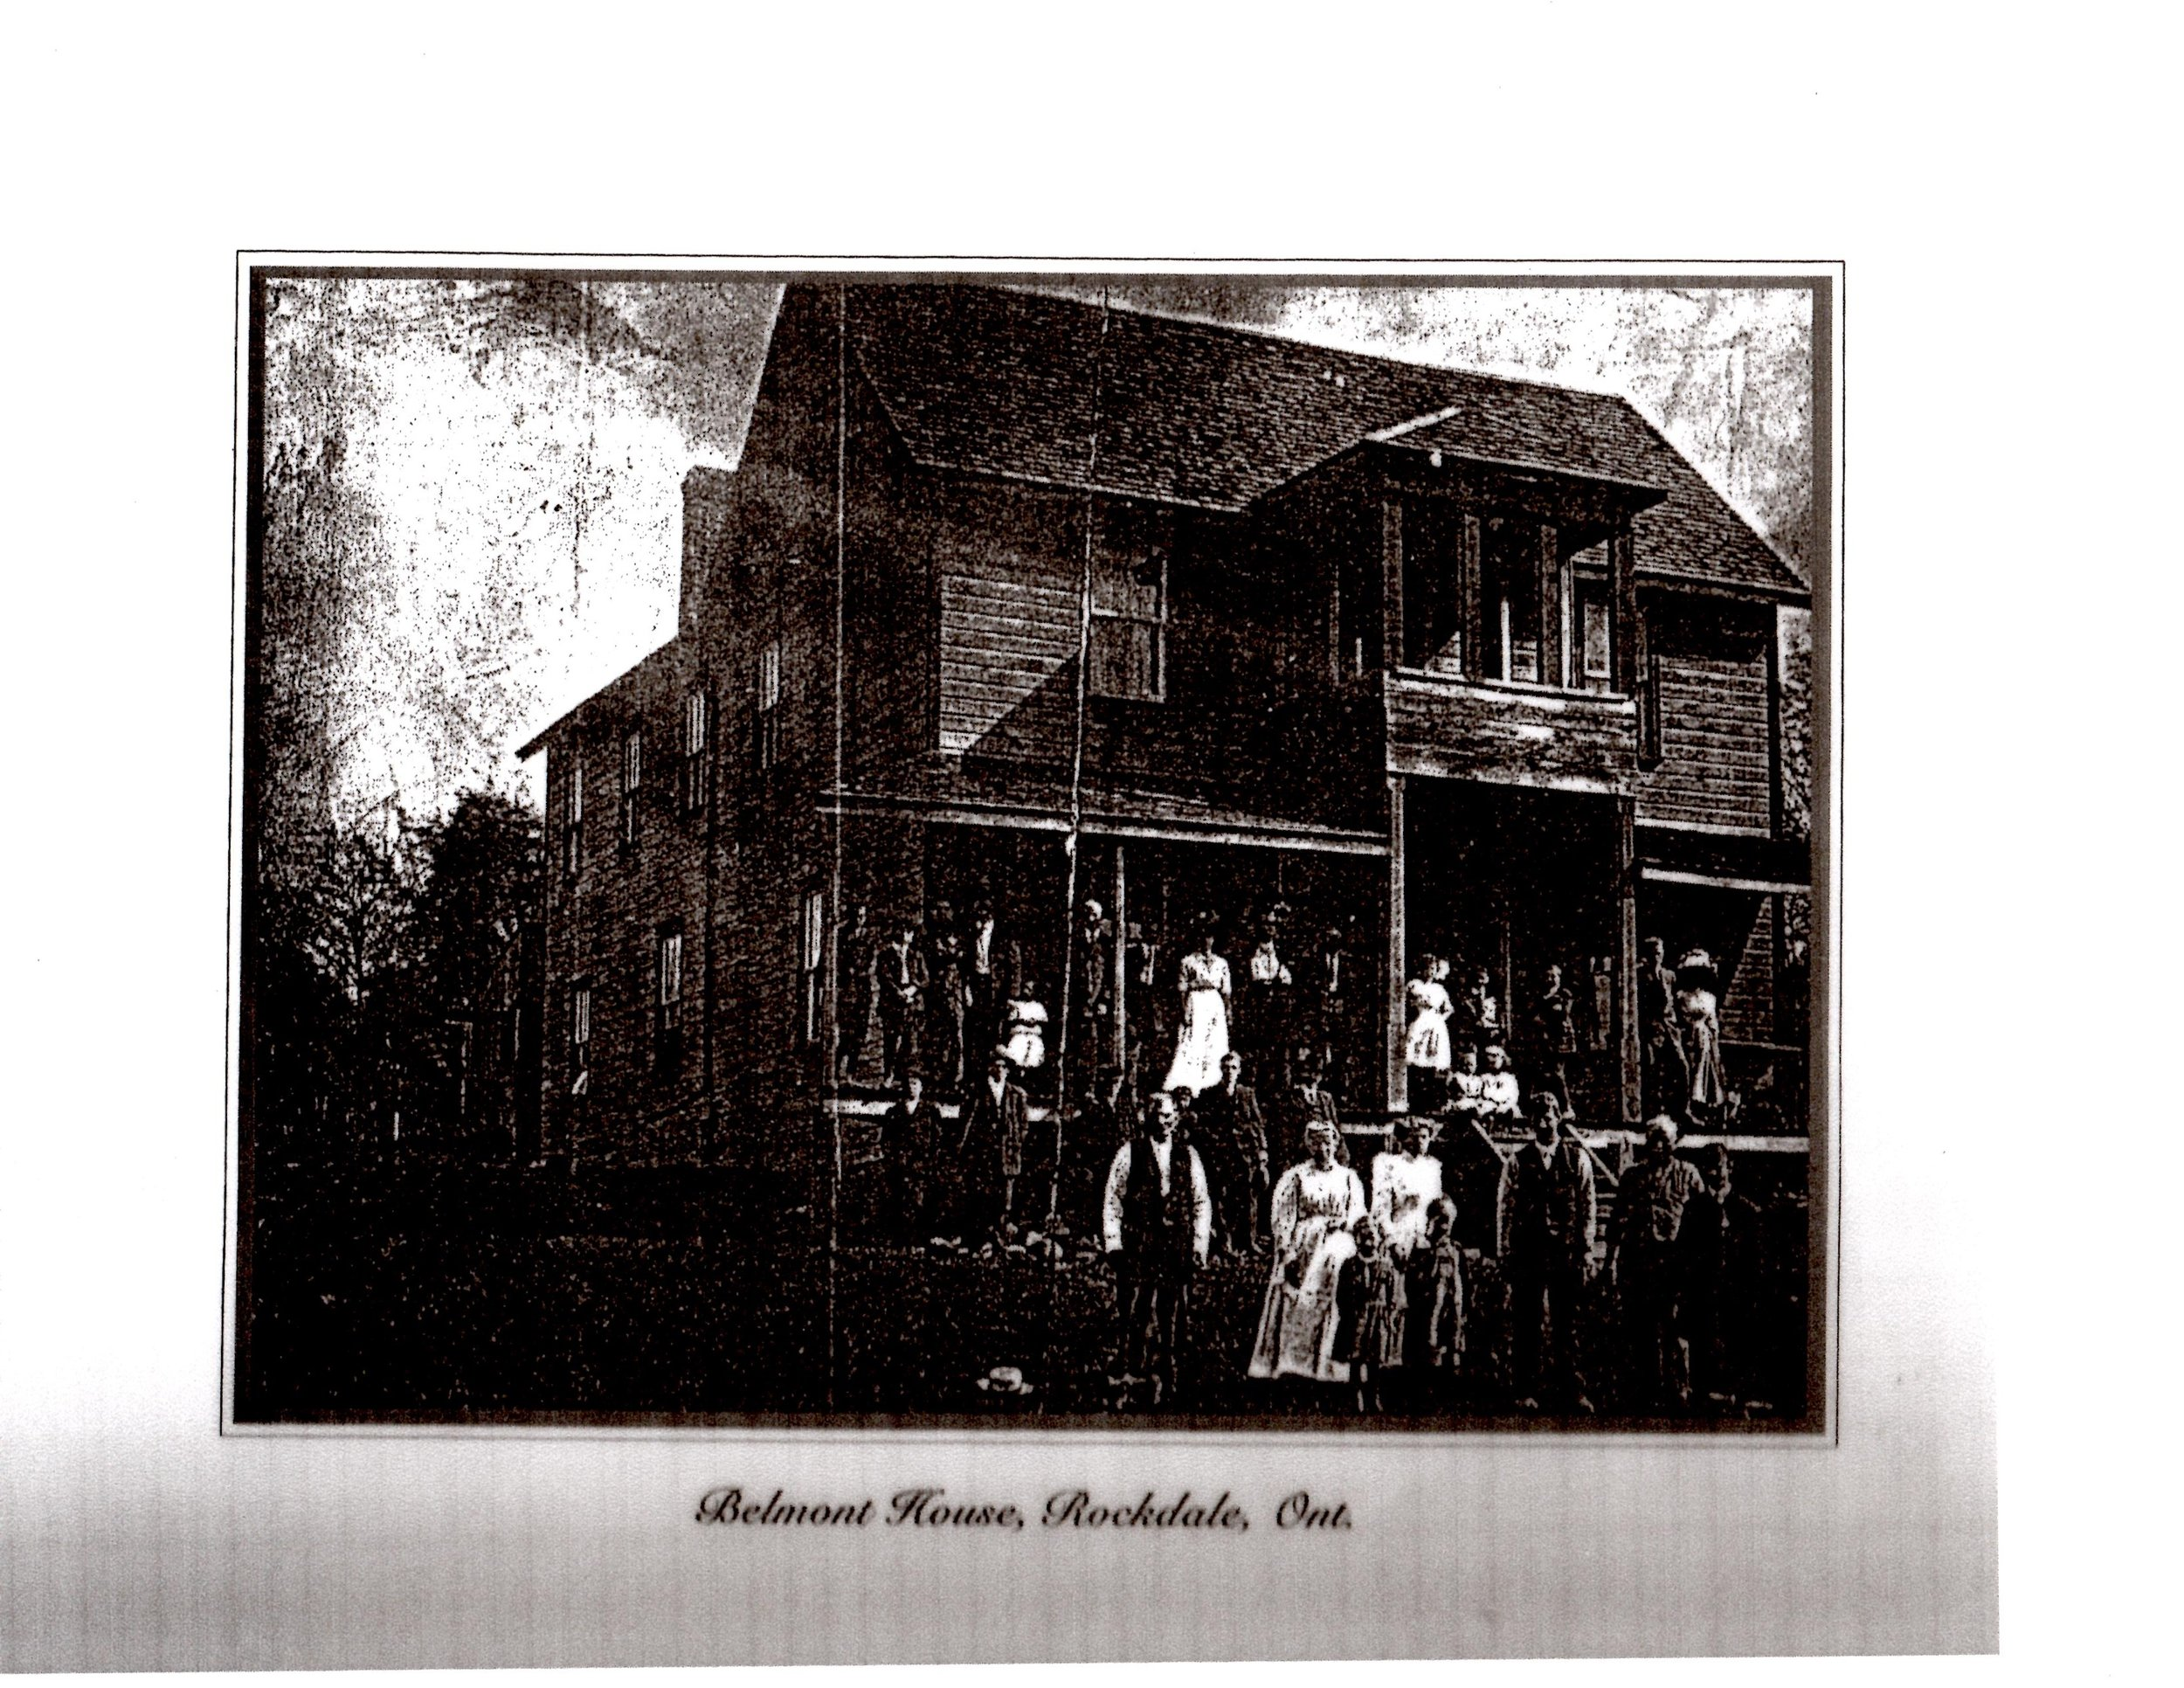 Belmont House, Cordova (Deer) Lake.jpg